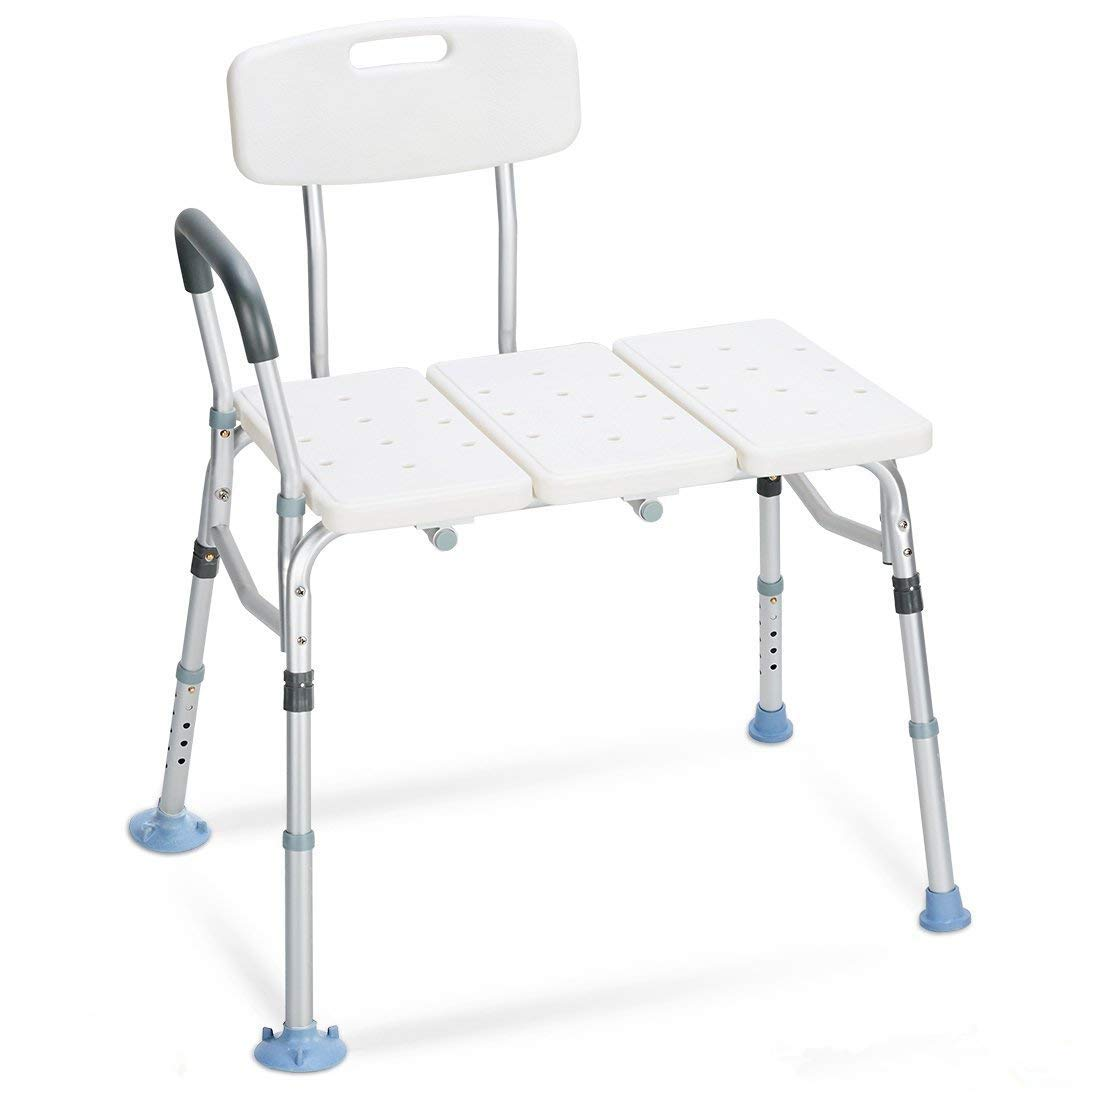 OasisSpace Tub Transfer Bench 400 lb - Heavy Duty Bath & Shower Transfer Bench - Adjustable Handicap Shower Chair with Reversible Backrest - Medical Bathroom Aid for Disabled, Seniors, Bariatric by OasisSpace